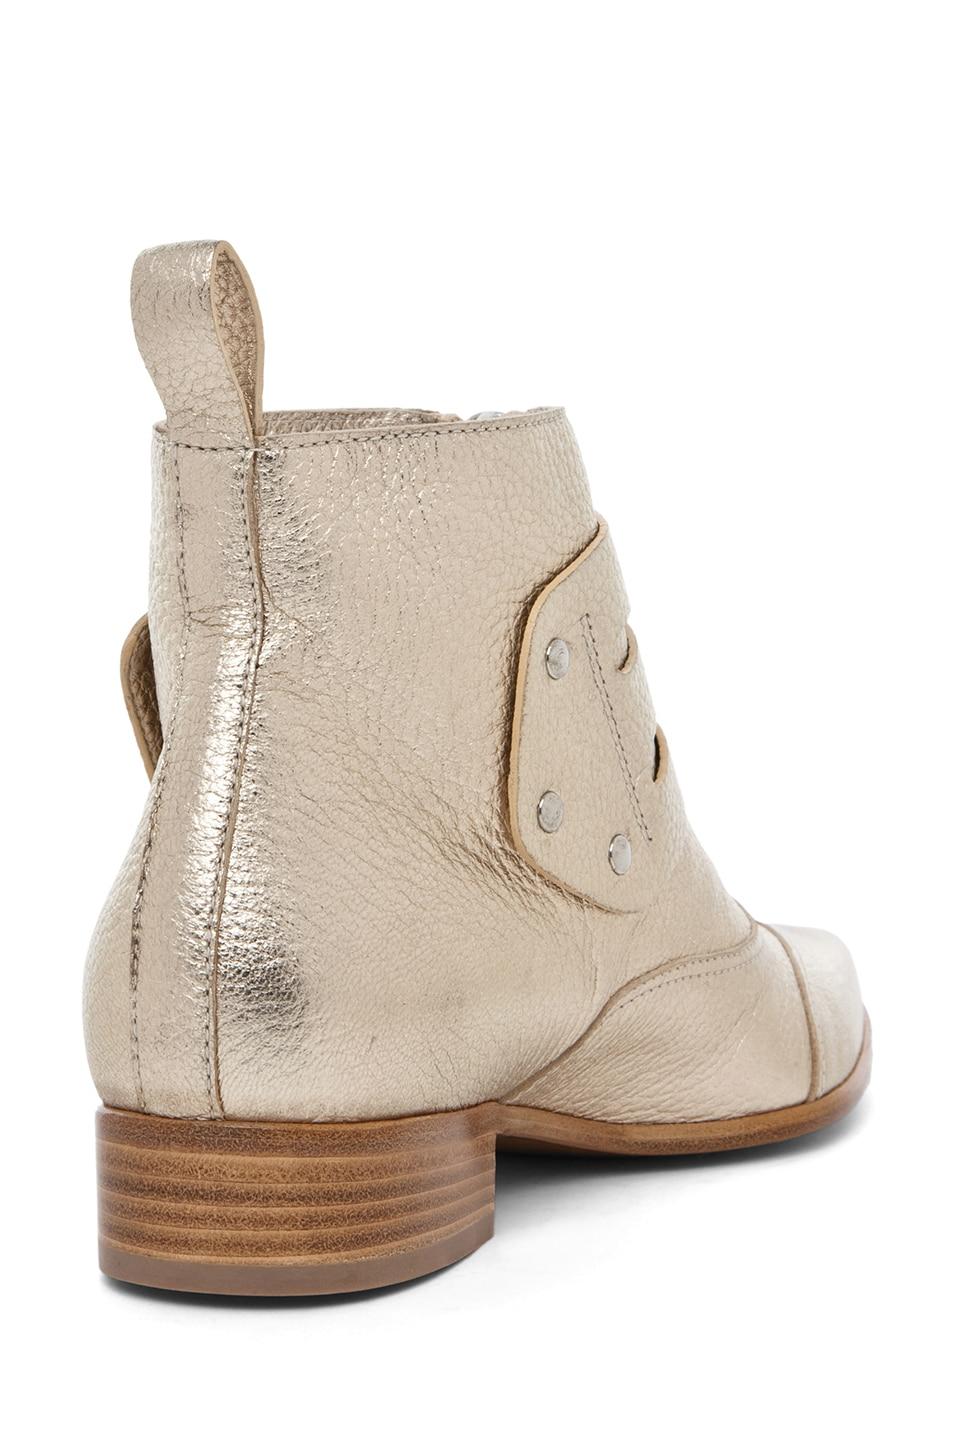 Image 3 of Tabitha Simmons Early Pebbled Leather Booties in Gold